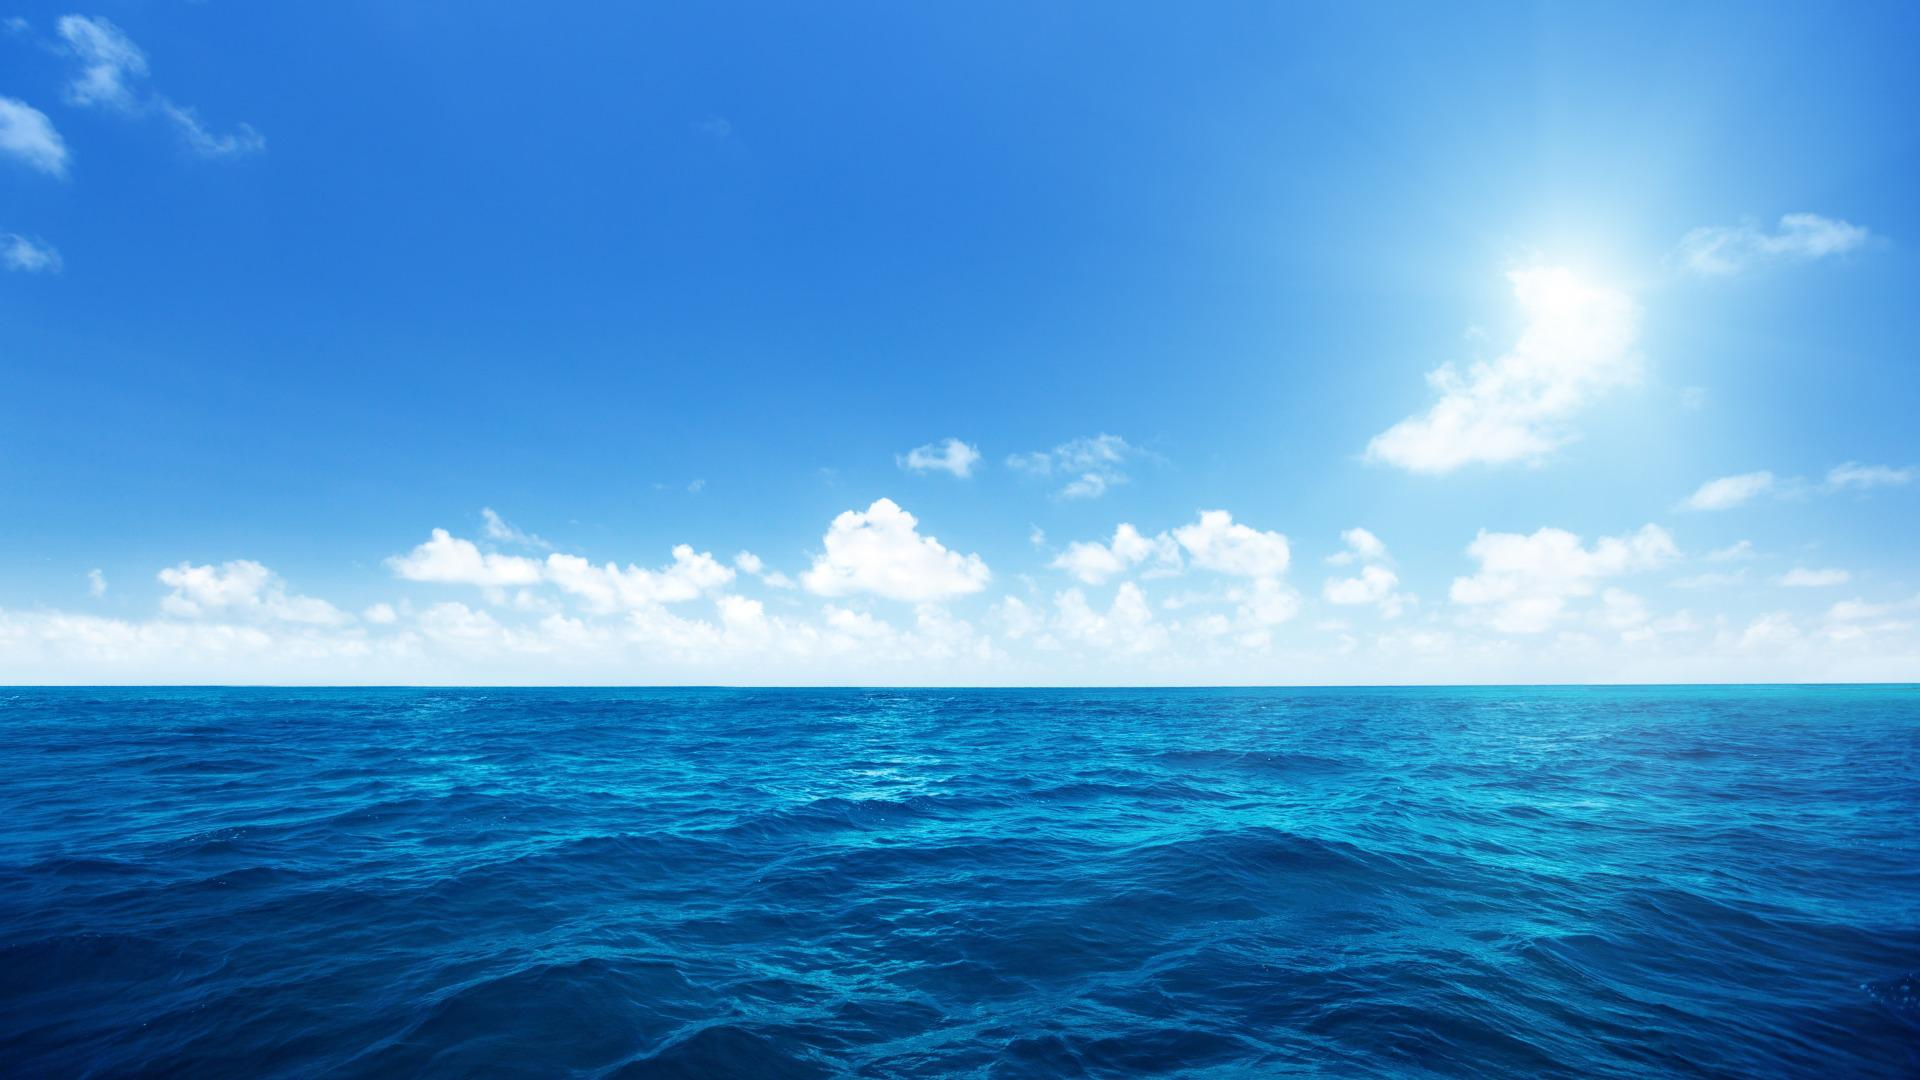 Blue Sea And Sky Full HD Wallpaper Background Image